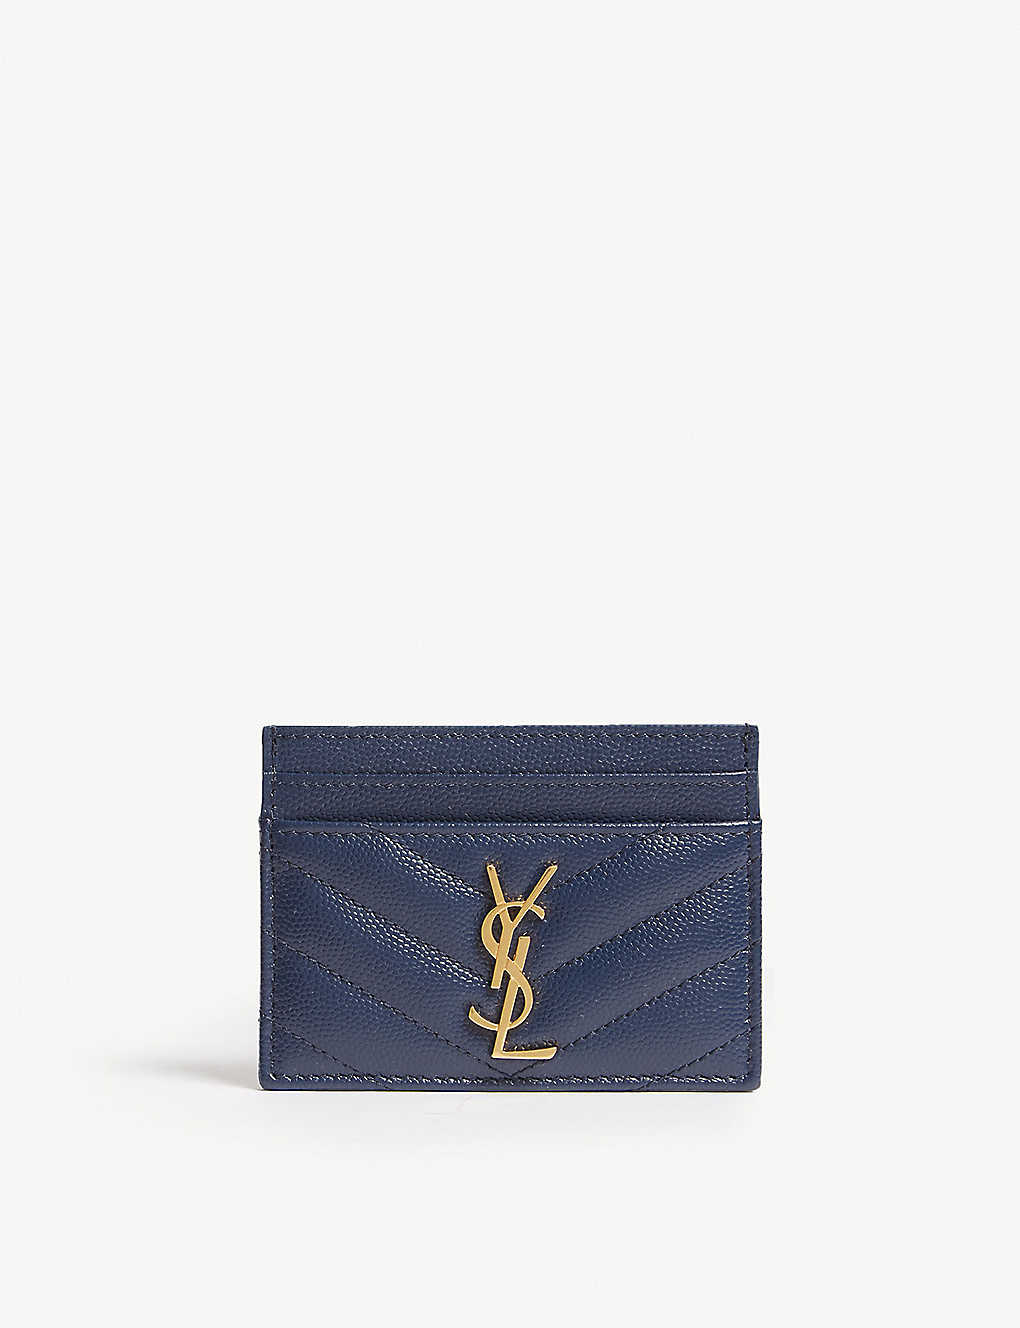 588f6ce8b39f SAINT LAURENT - Monogram quilted card holder